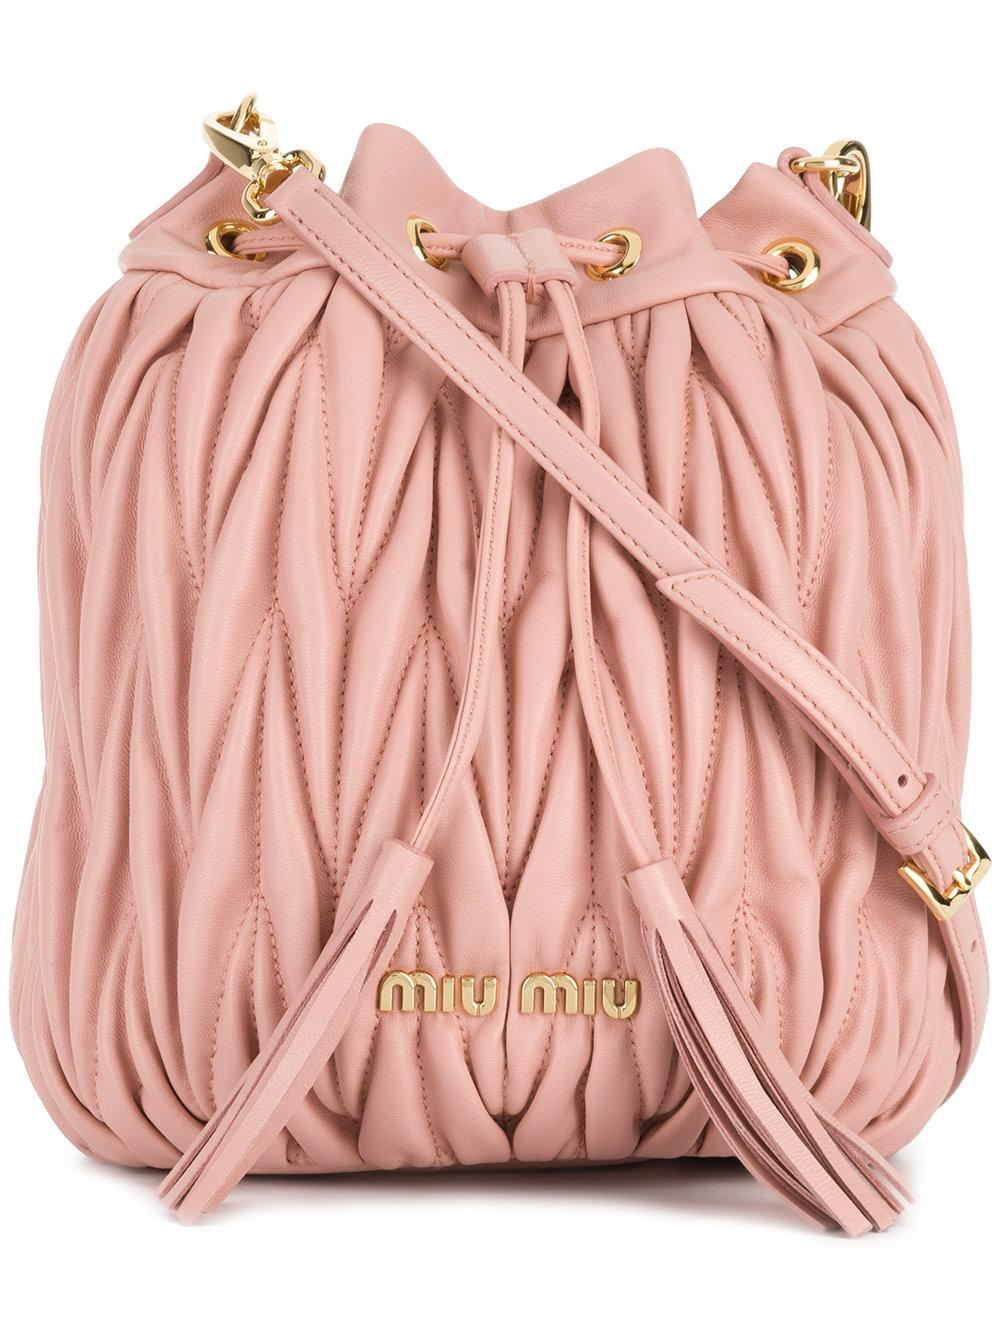 a09e0ae9974 Miu Miu Quilted Leather Bucket Bag In Pink